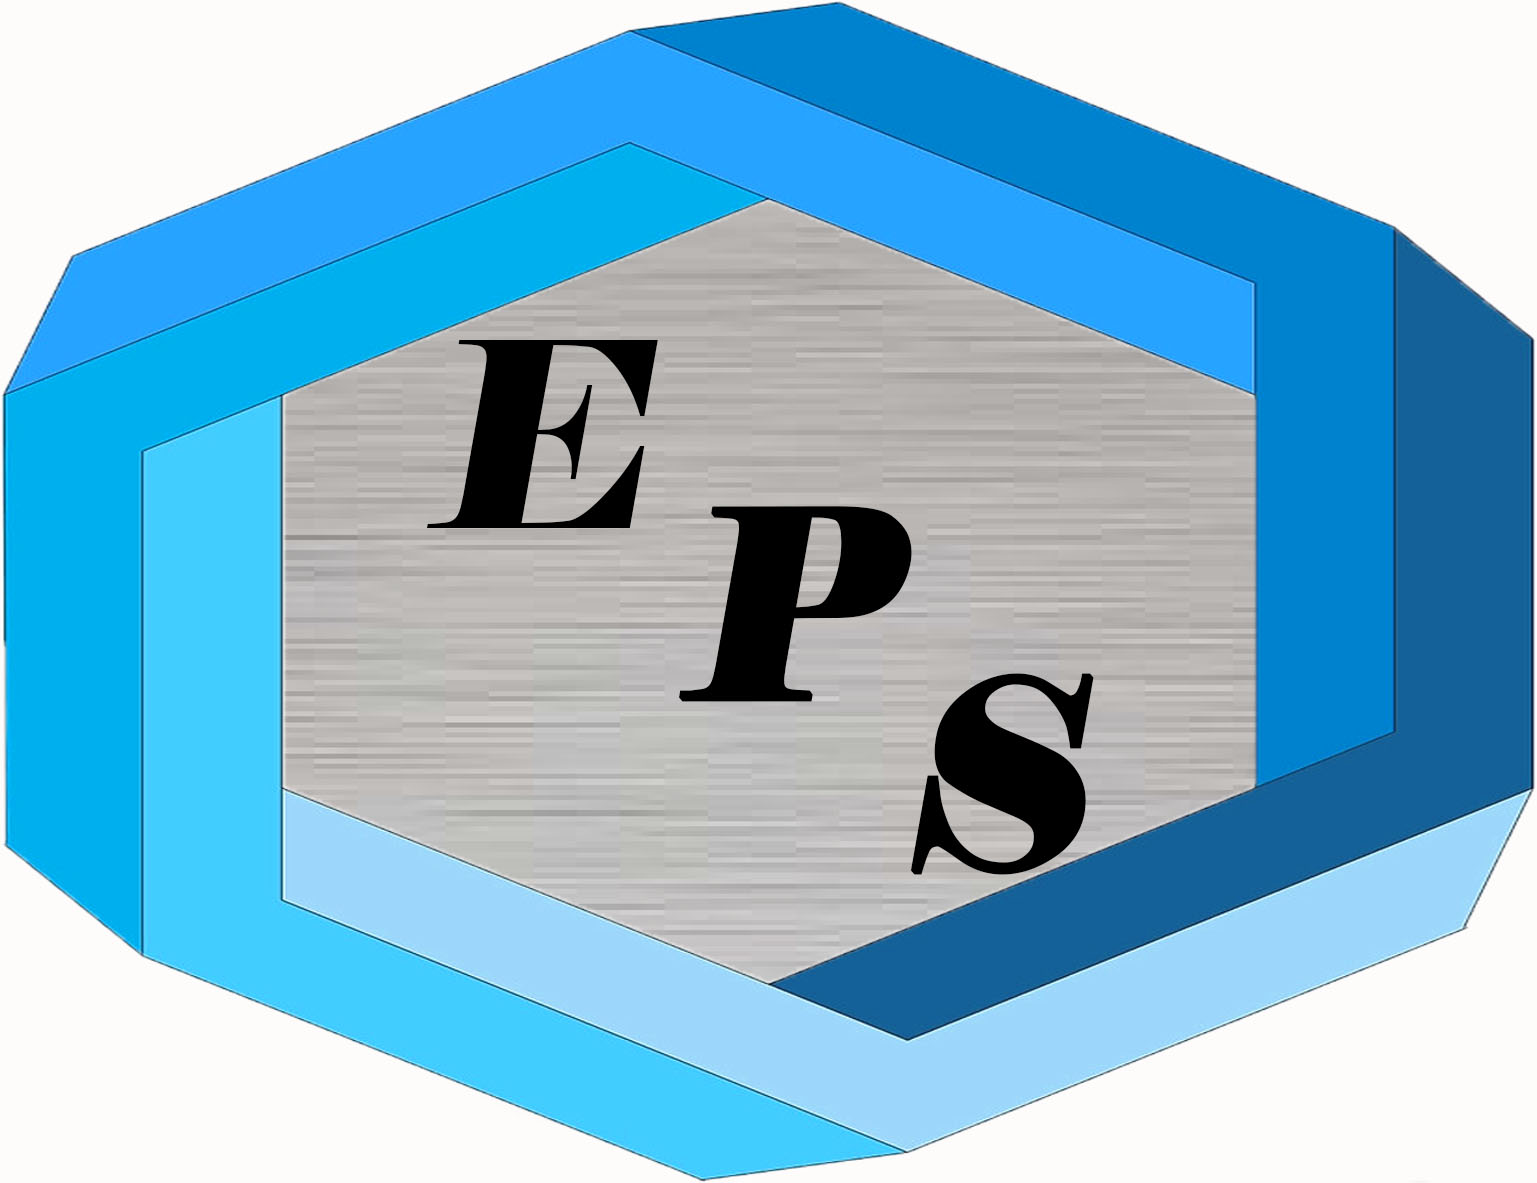 Engineering and Project Solutions Pty Ltd